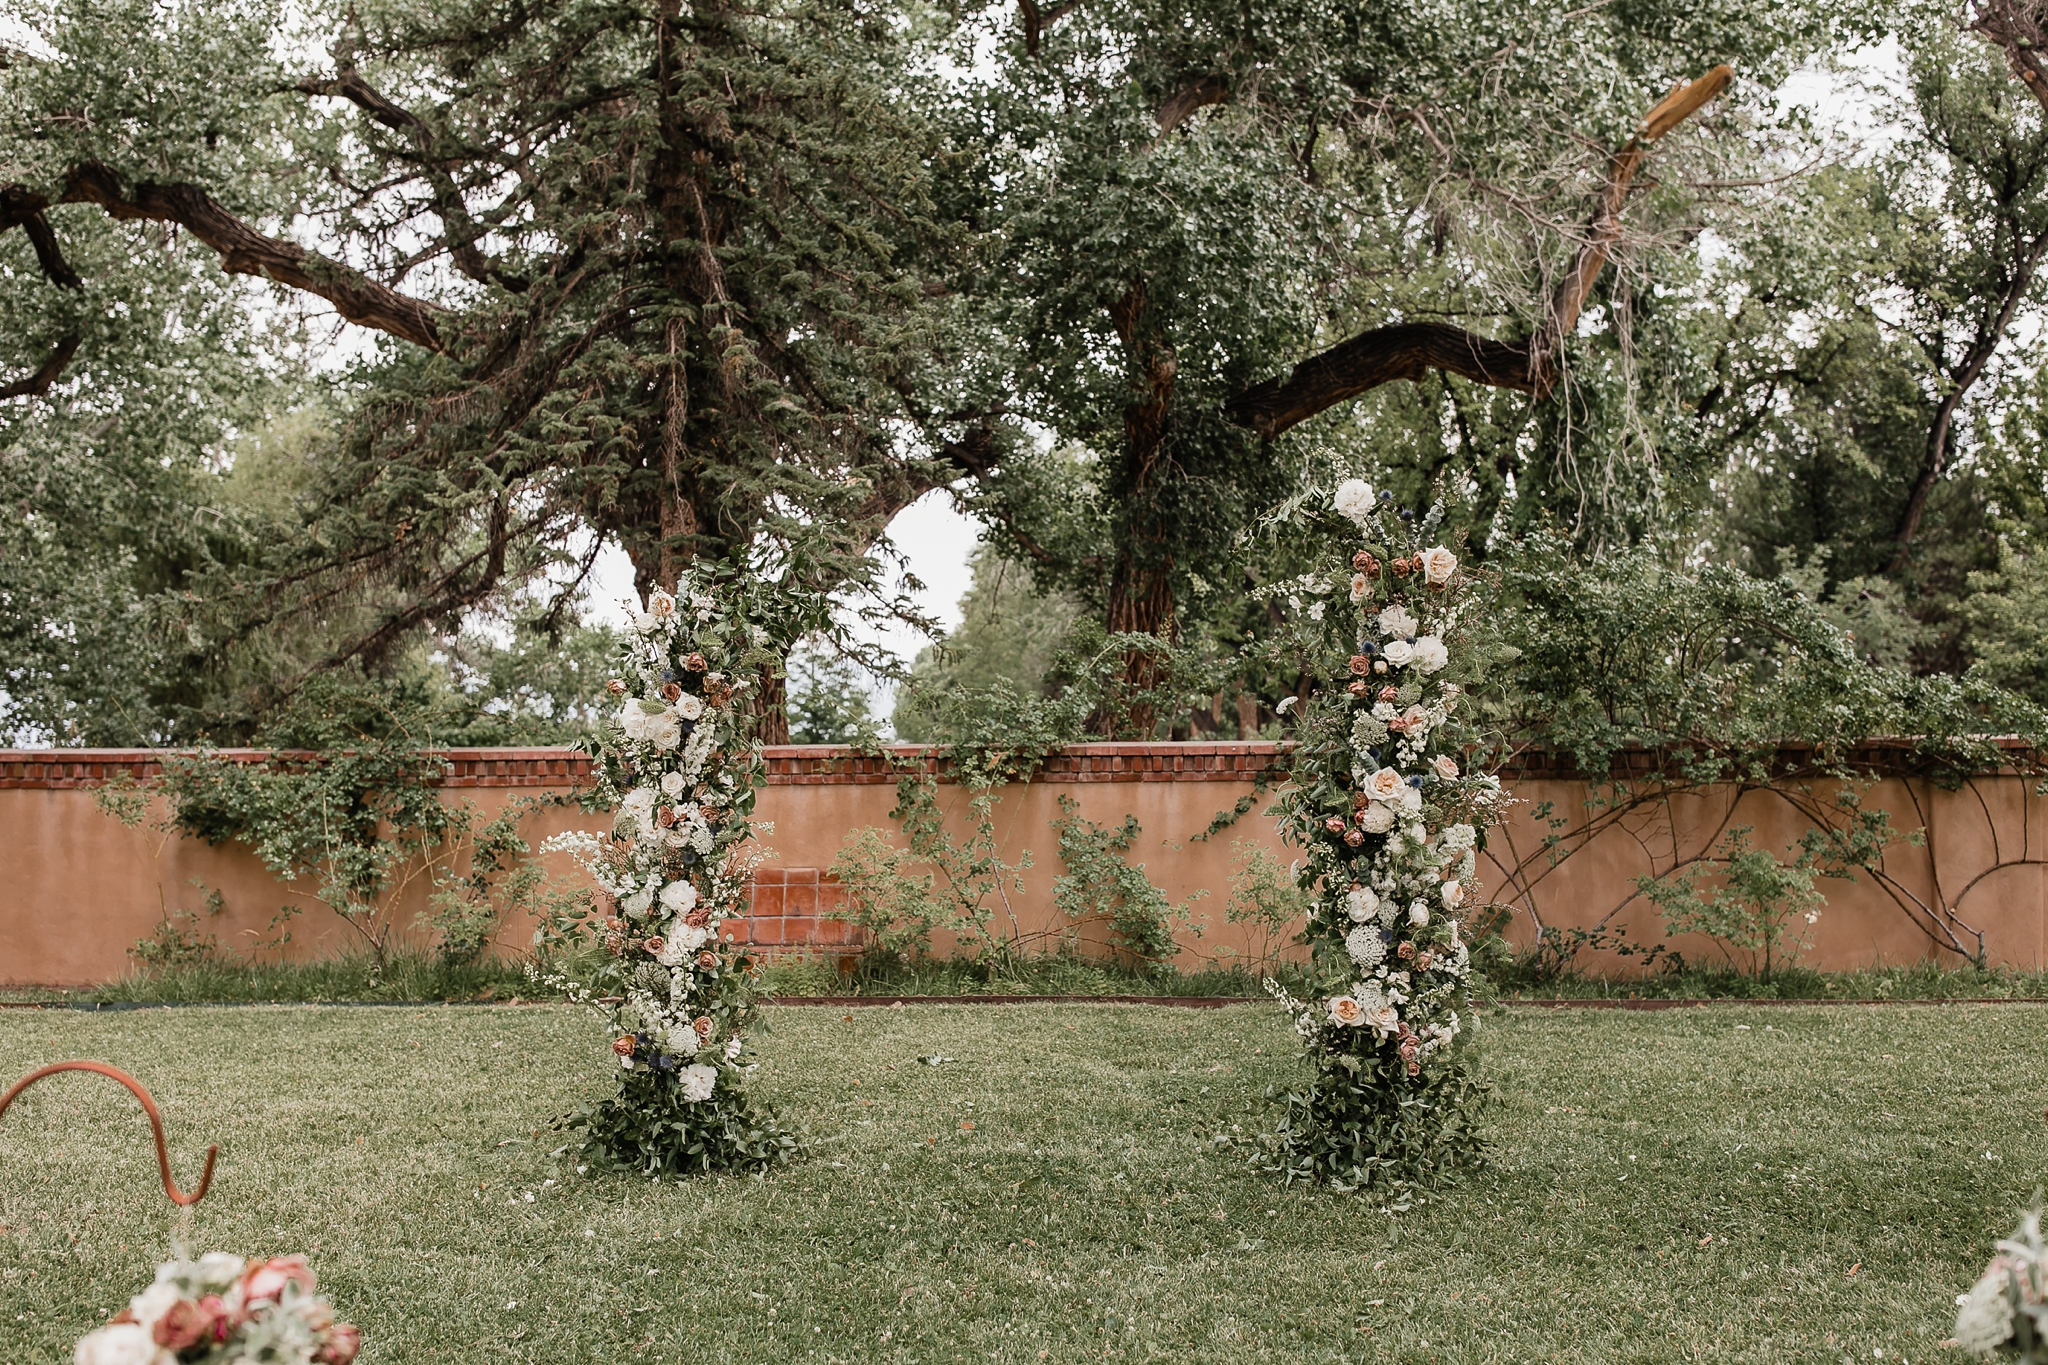 Alicia+lucia+photography+-+albuquerque+wedding+photographer+-+santa+fe+wedding+photography+-+new+mexico+wedding+photographer+-+new+mexico+wedding+-+summer+wedding+-+los+poblanos+wedding+-+albuquerque+wedding_0026.jpg